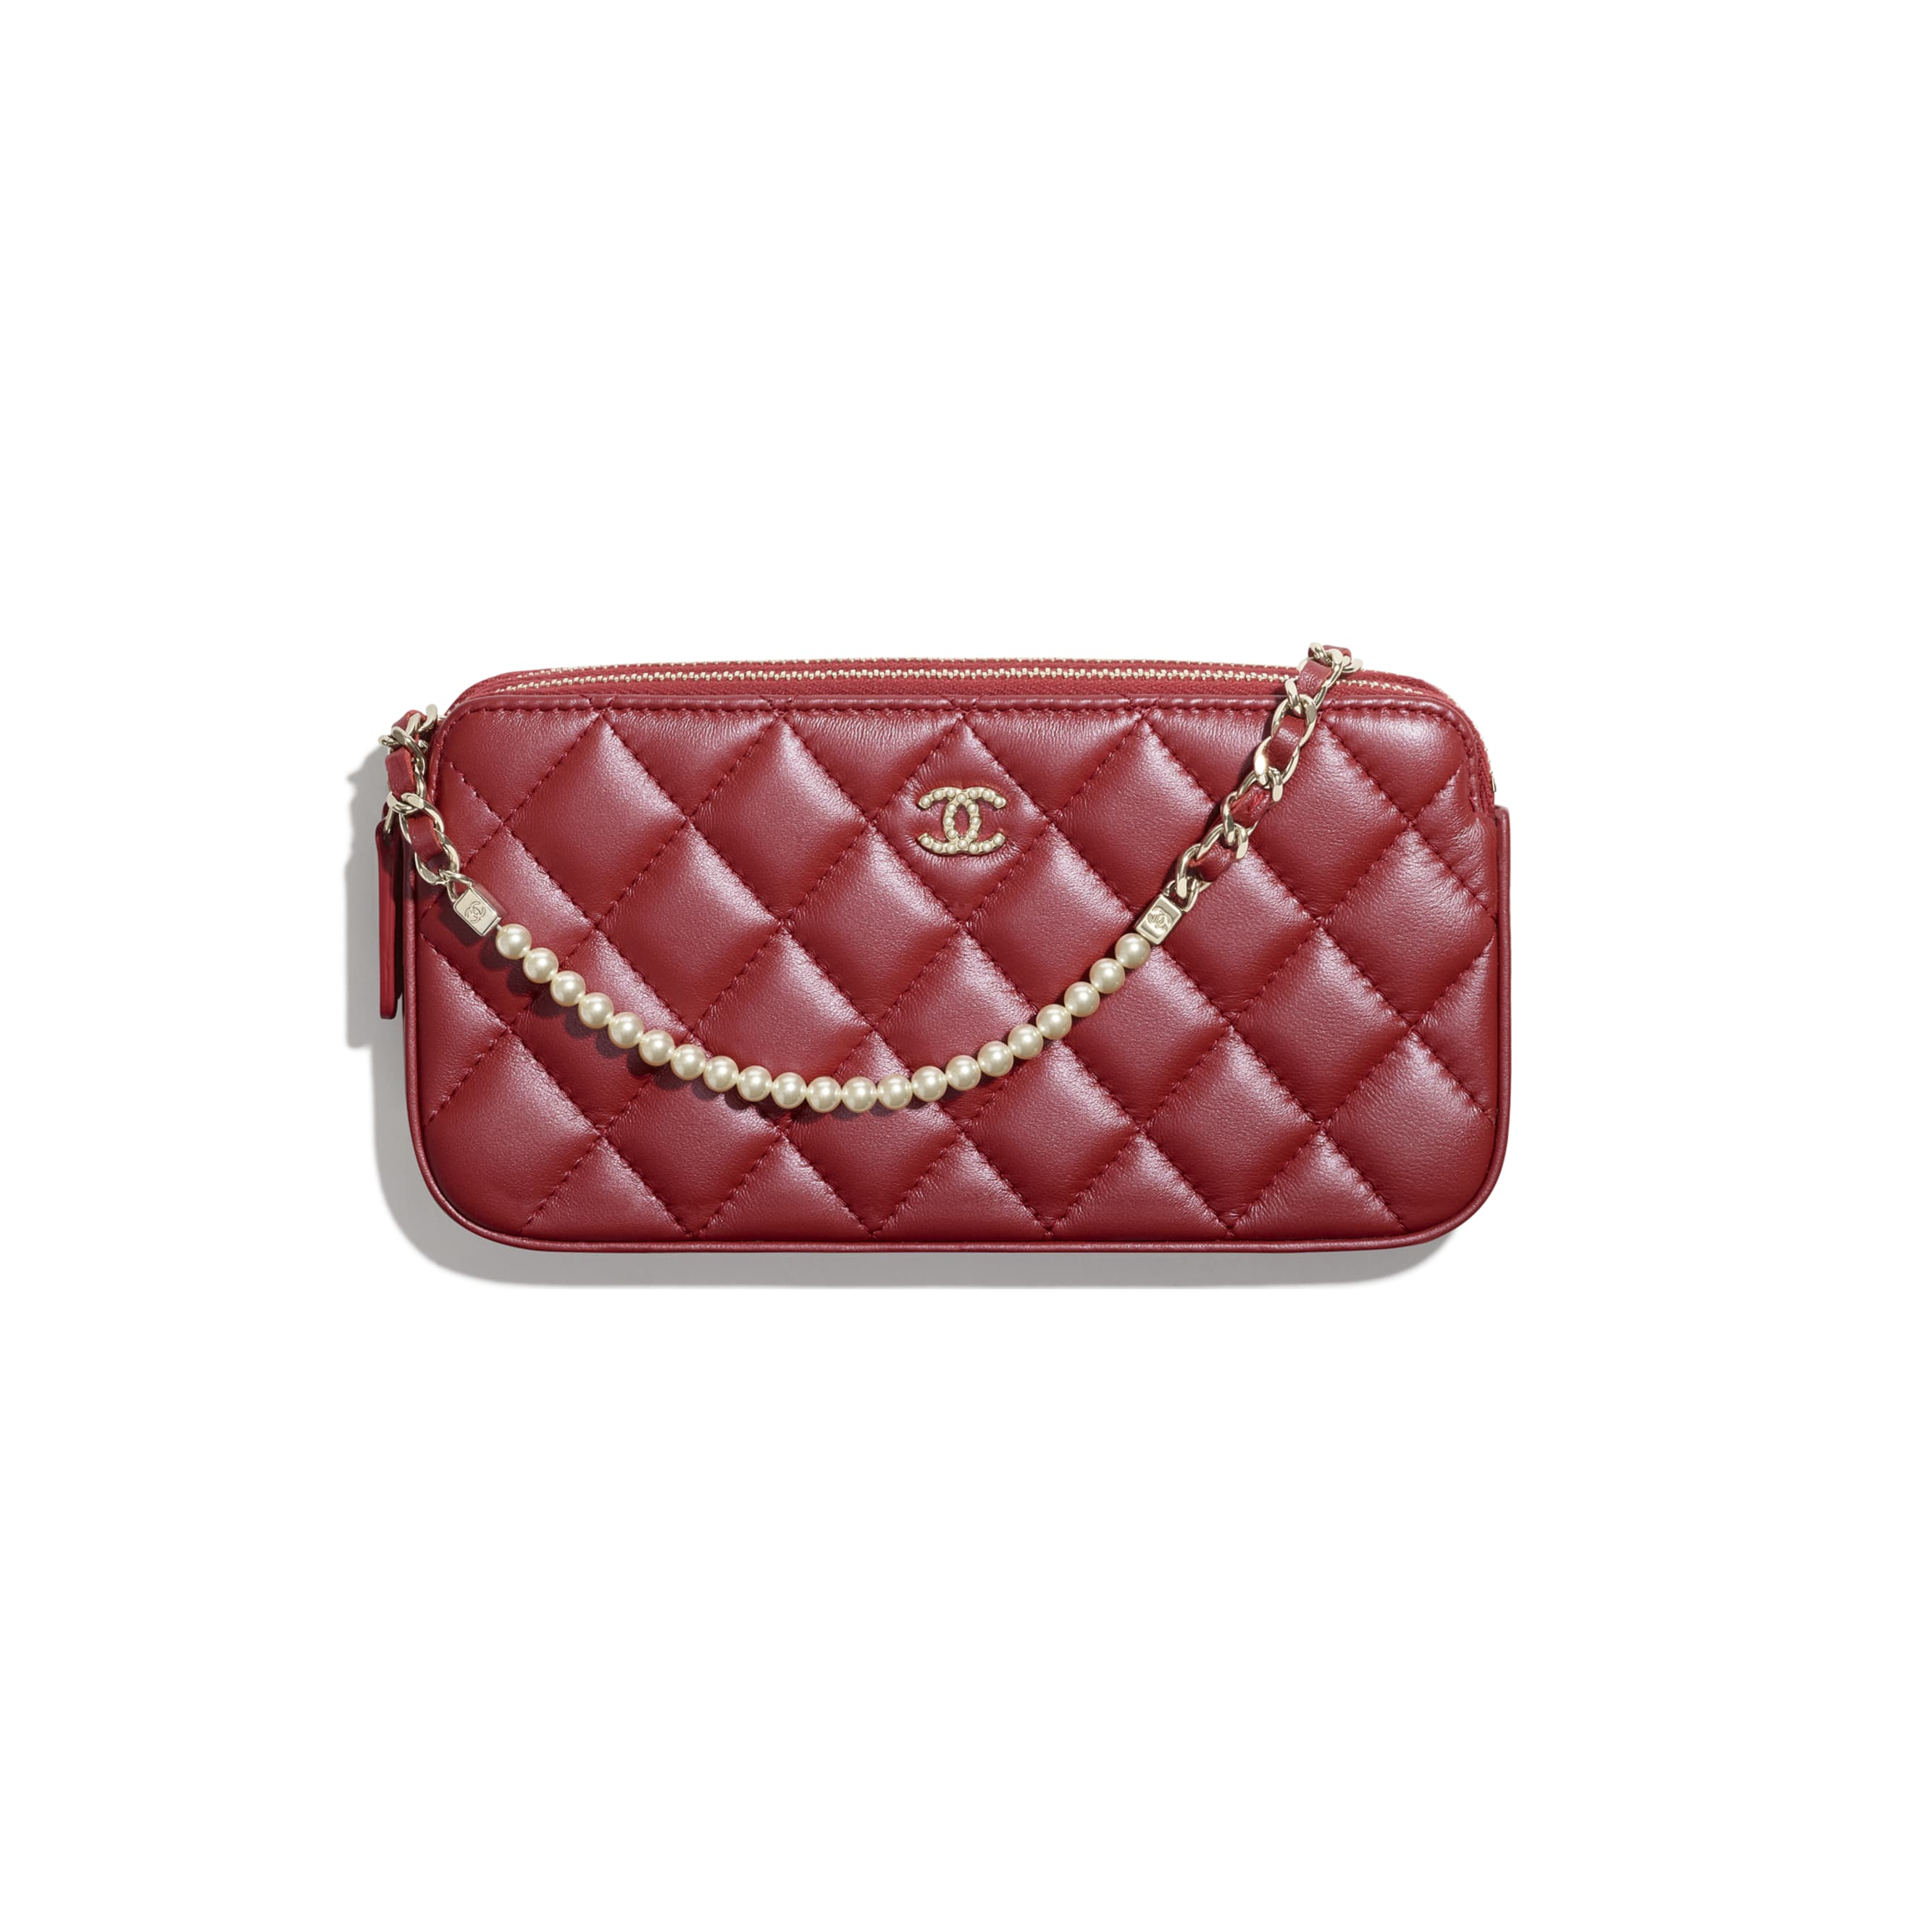 Clutch With Chain - Red - Iridescent lambskin & gold-tone metal - CHANEL - Default view - see standard sized version